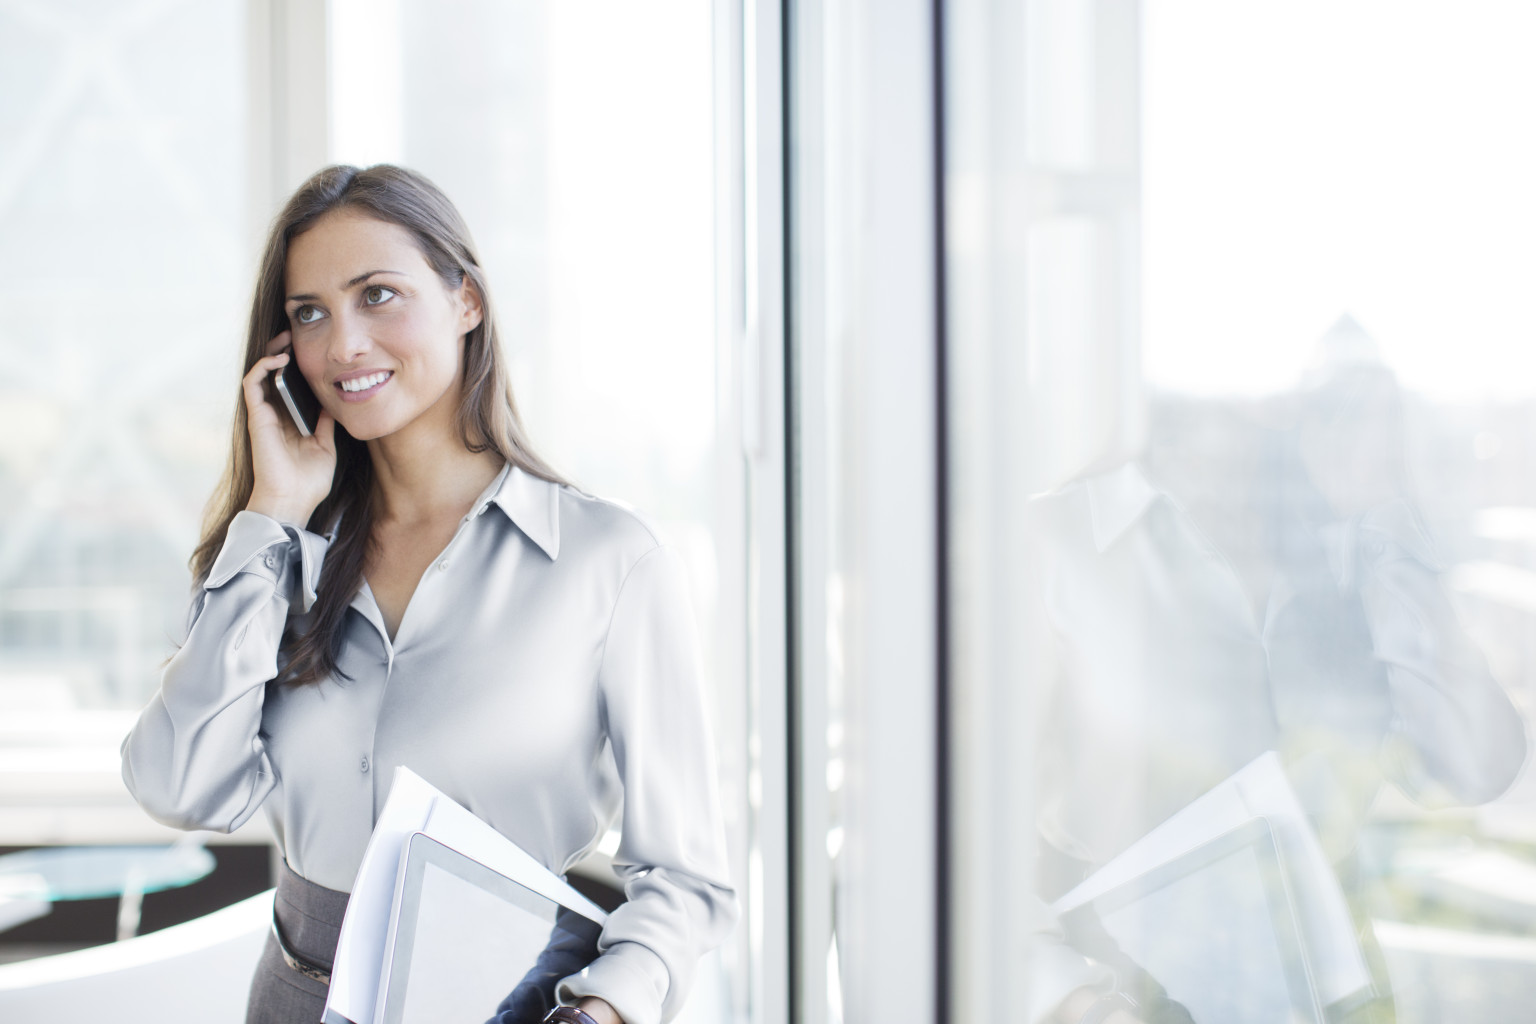 women work and happiness Most adults spend more waking hours at work than anywhere else if you are unhappy there, you are unhappy a major chunk of the time sharon salzberg, renowned meditation teacher and.